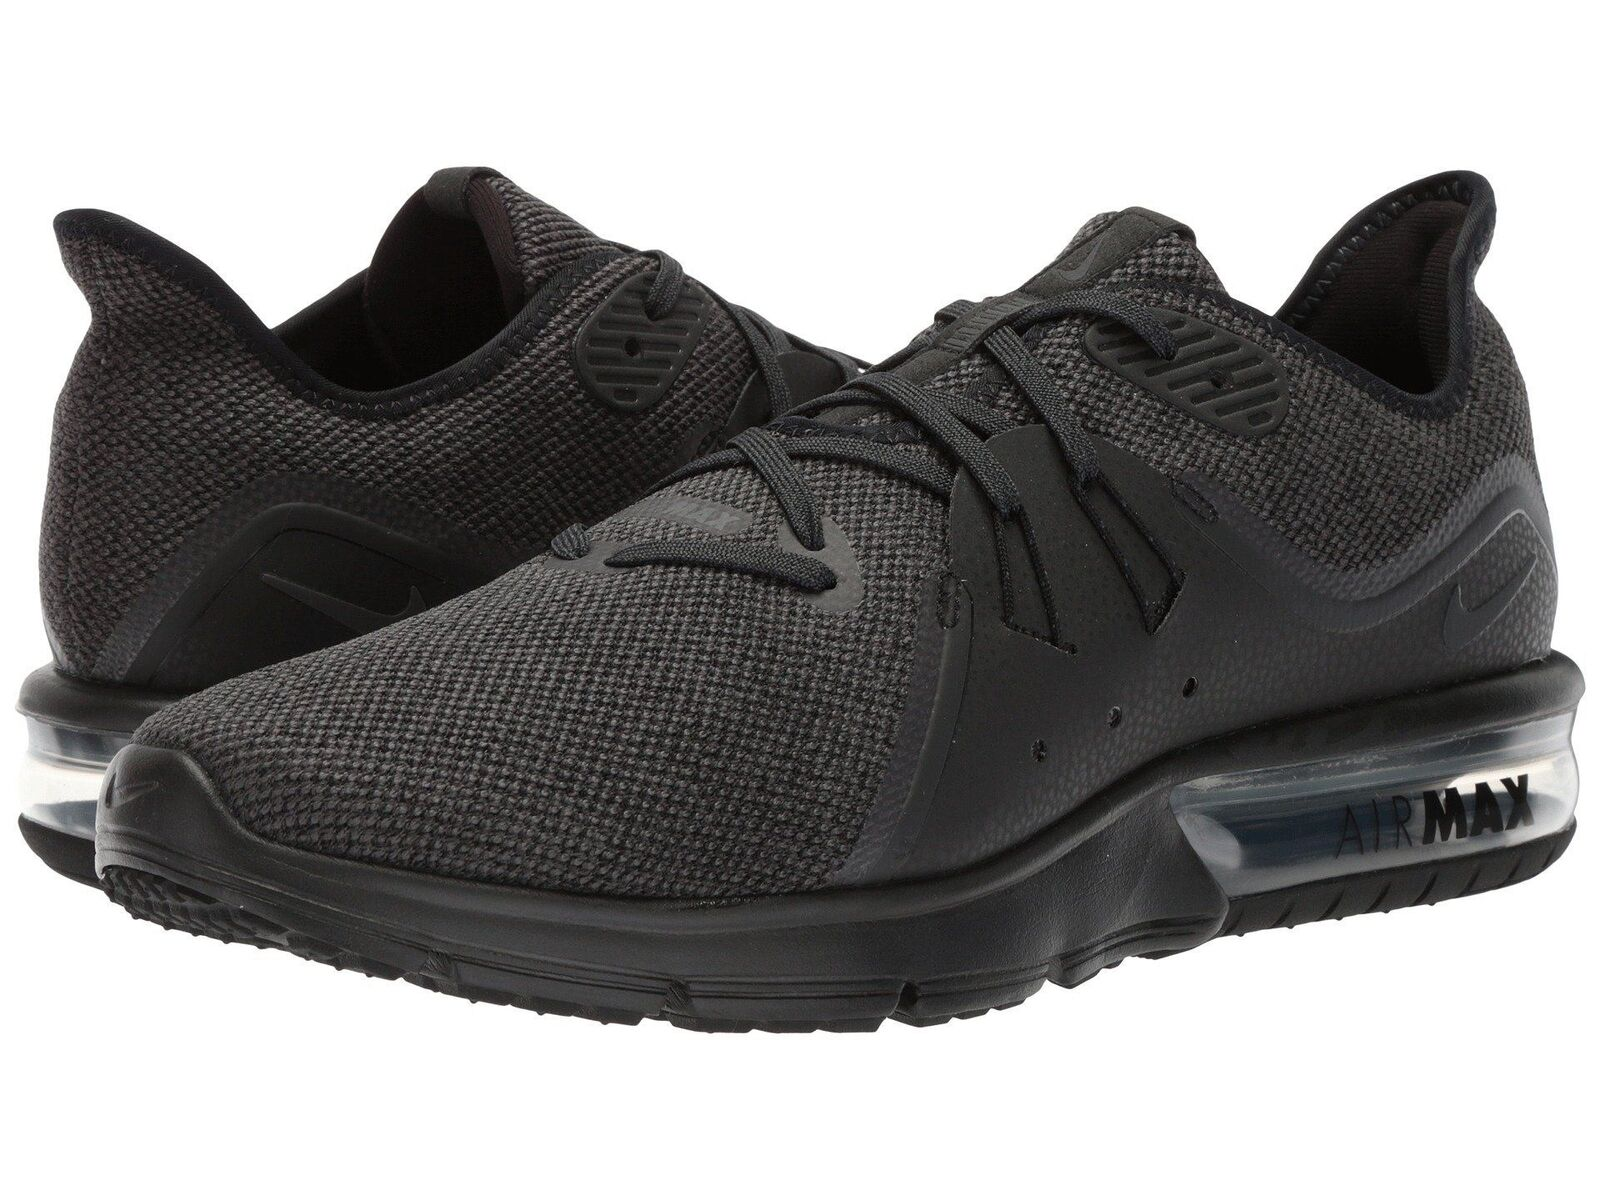 Nike Air Max Sequent 3 Black Anthracite 921694010 Men's Running shoes